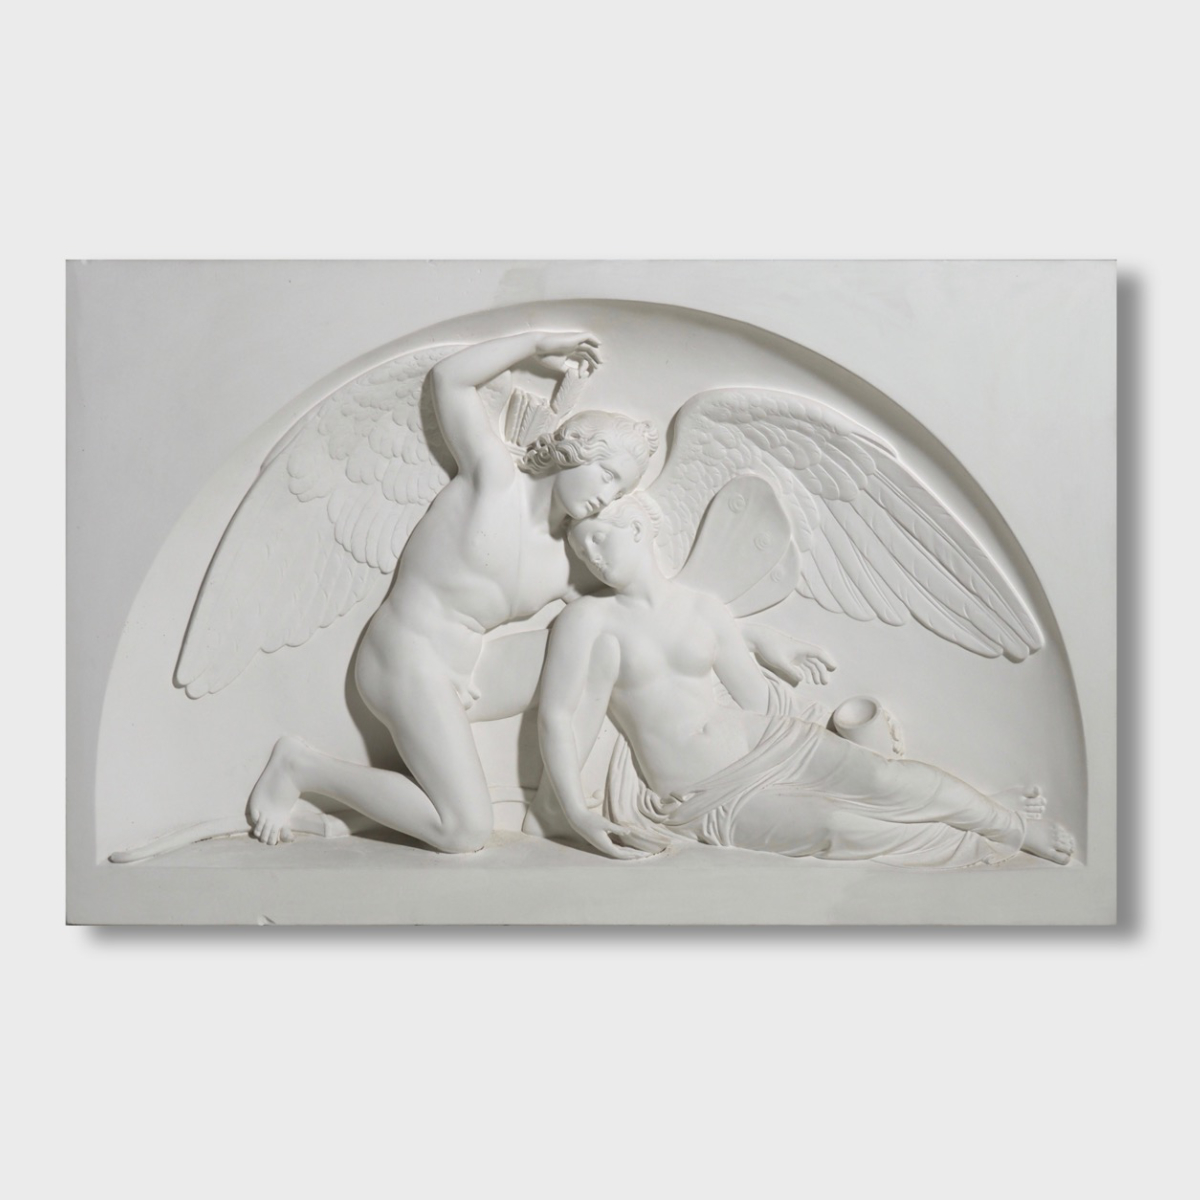 "Relief after Bertel Thorvaldsen, ""Amor"". - € 1.000"